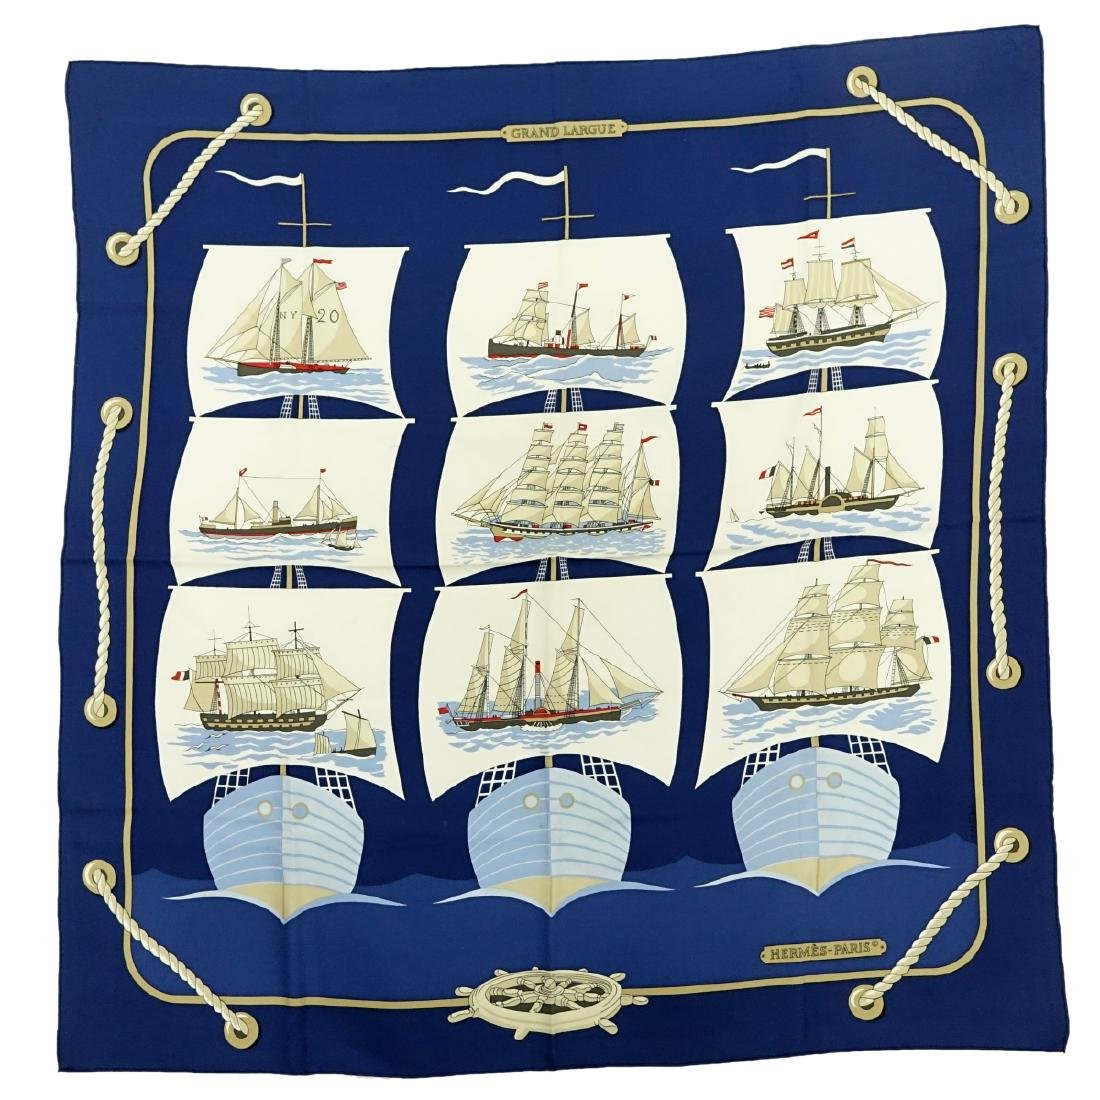 Hermes Grand Largue Twill Silk Scarf